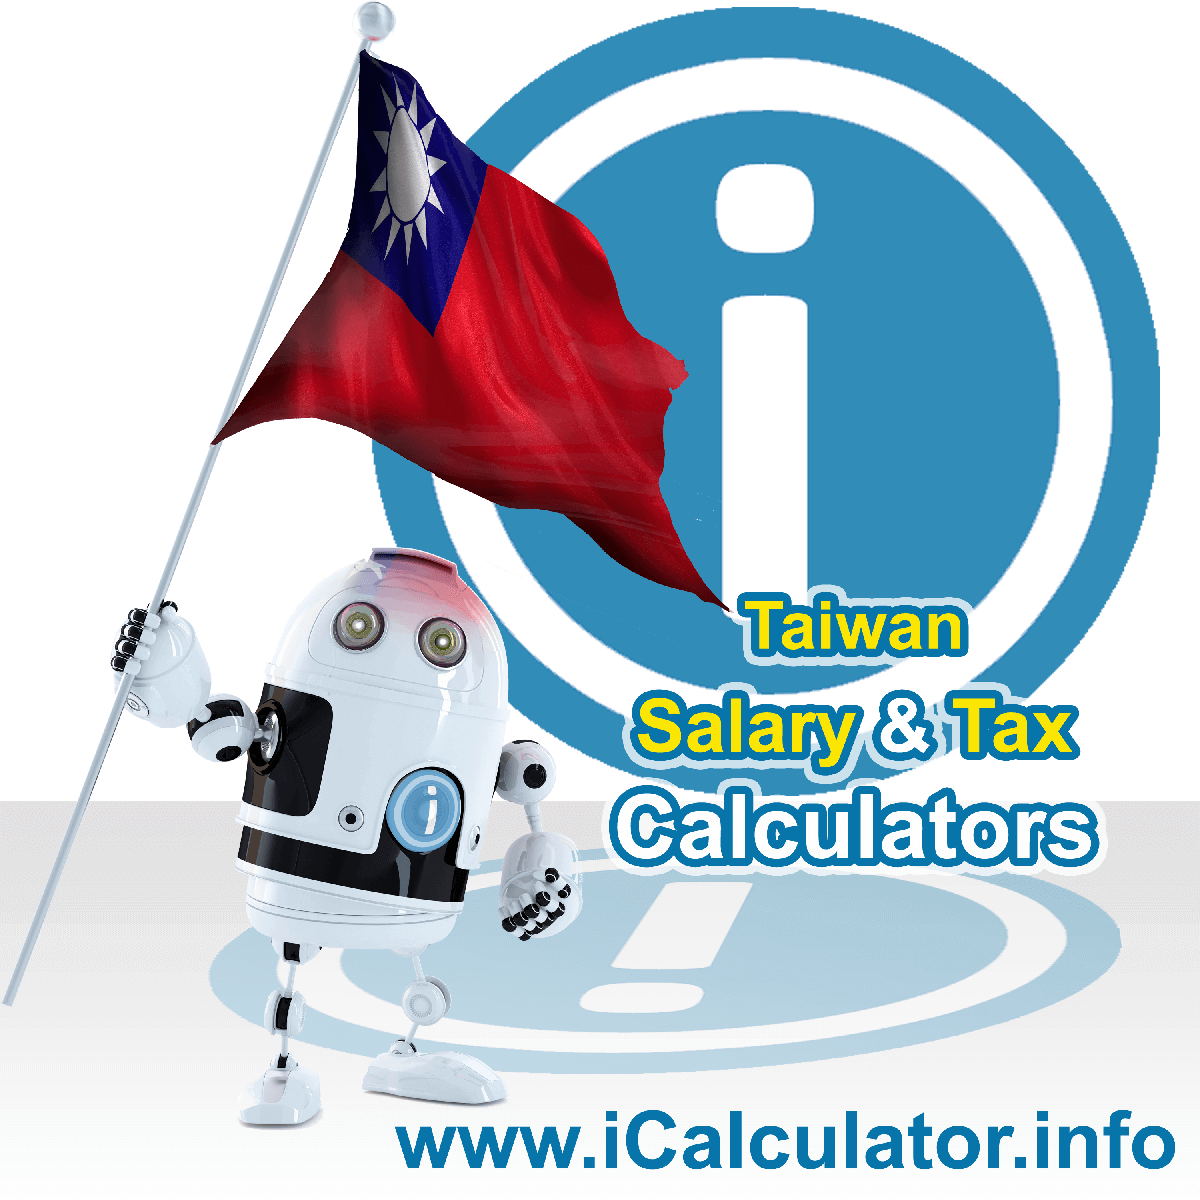 Taiwan Wage Calculator. This image shows the Taiwan flag and information relating to the tax formula for the Taiwan Tax Calculator